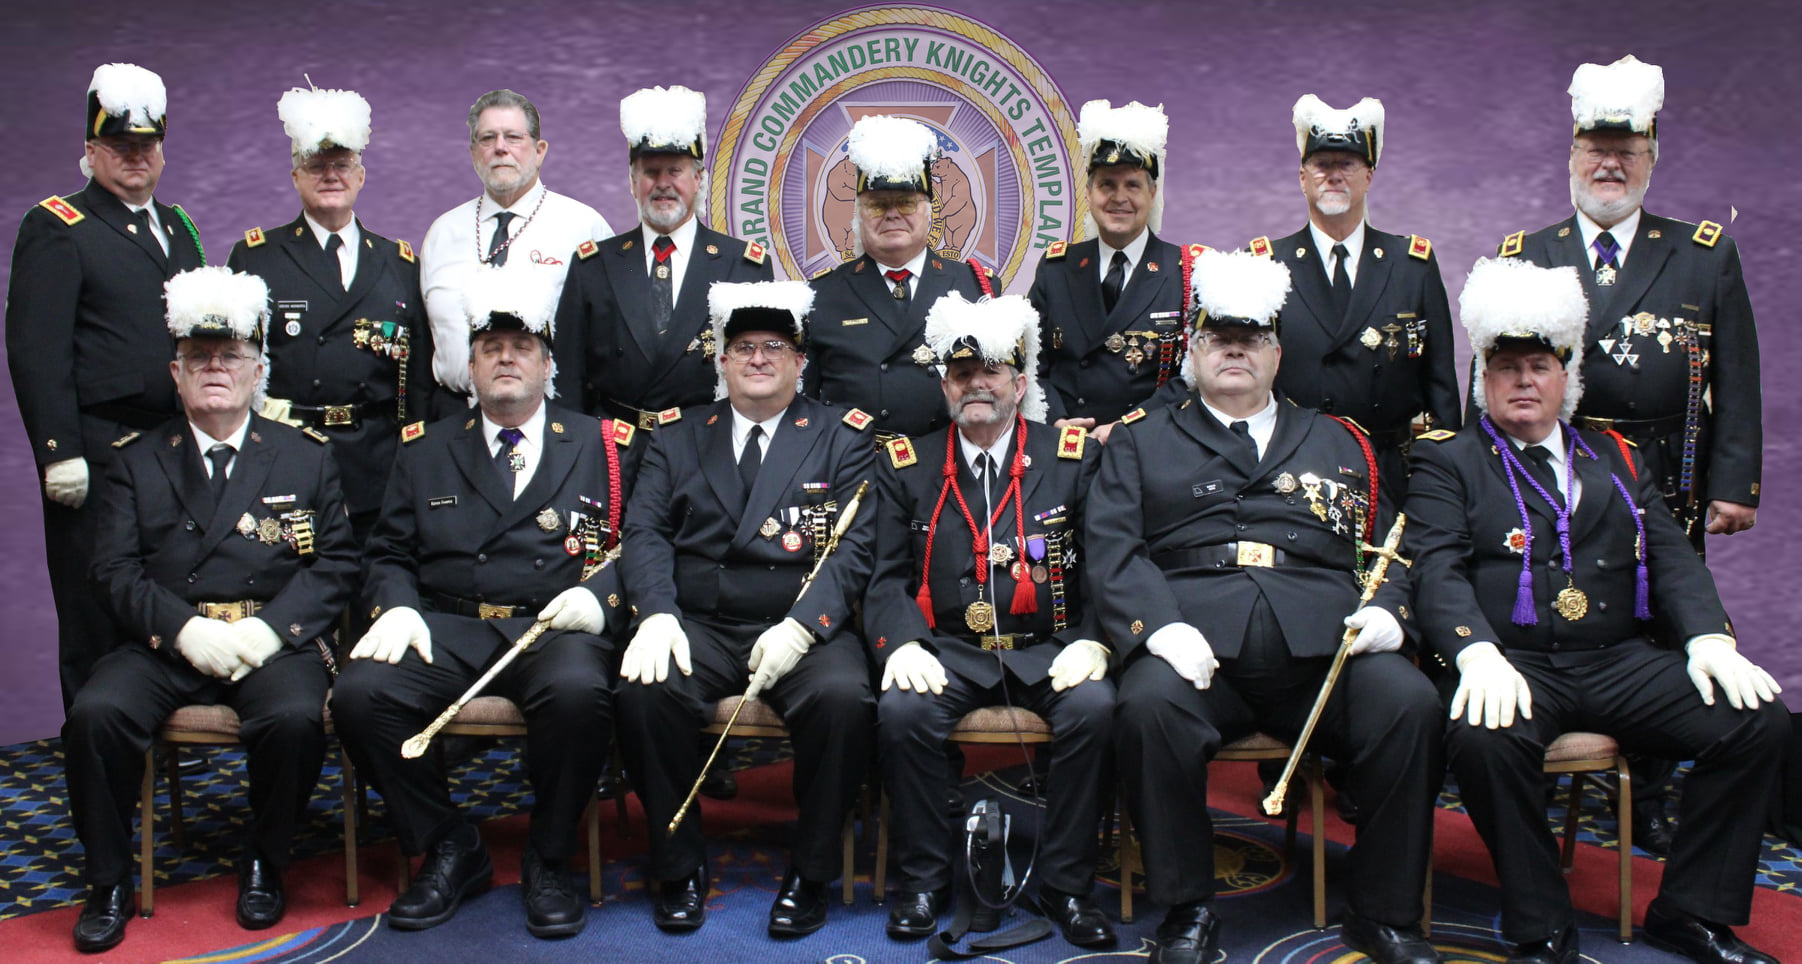 2021-2022 Grand Commandery Officers